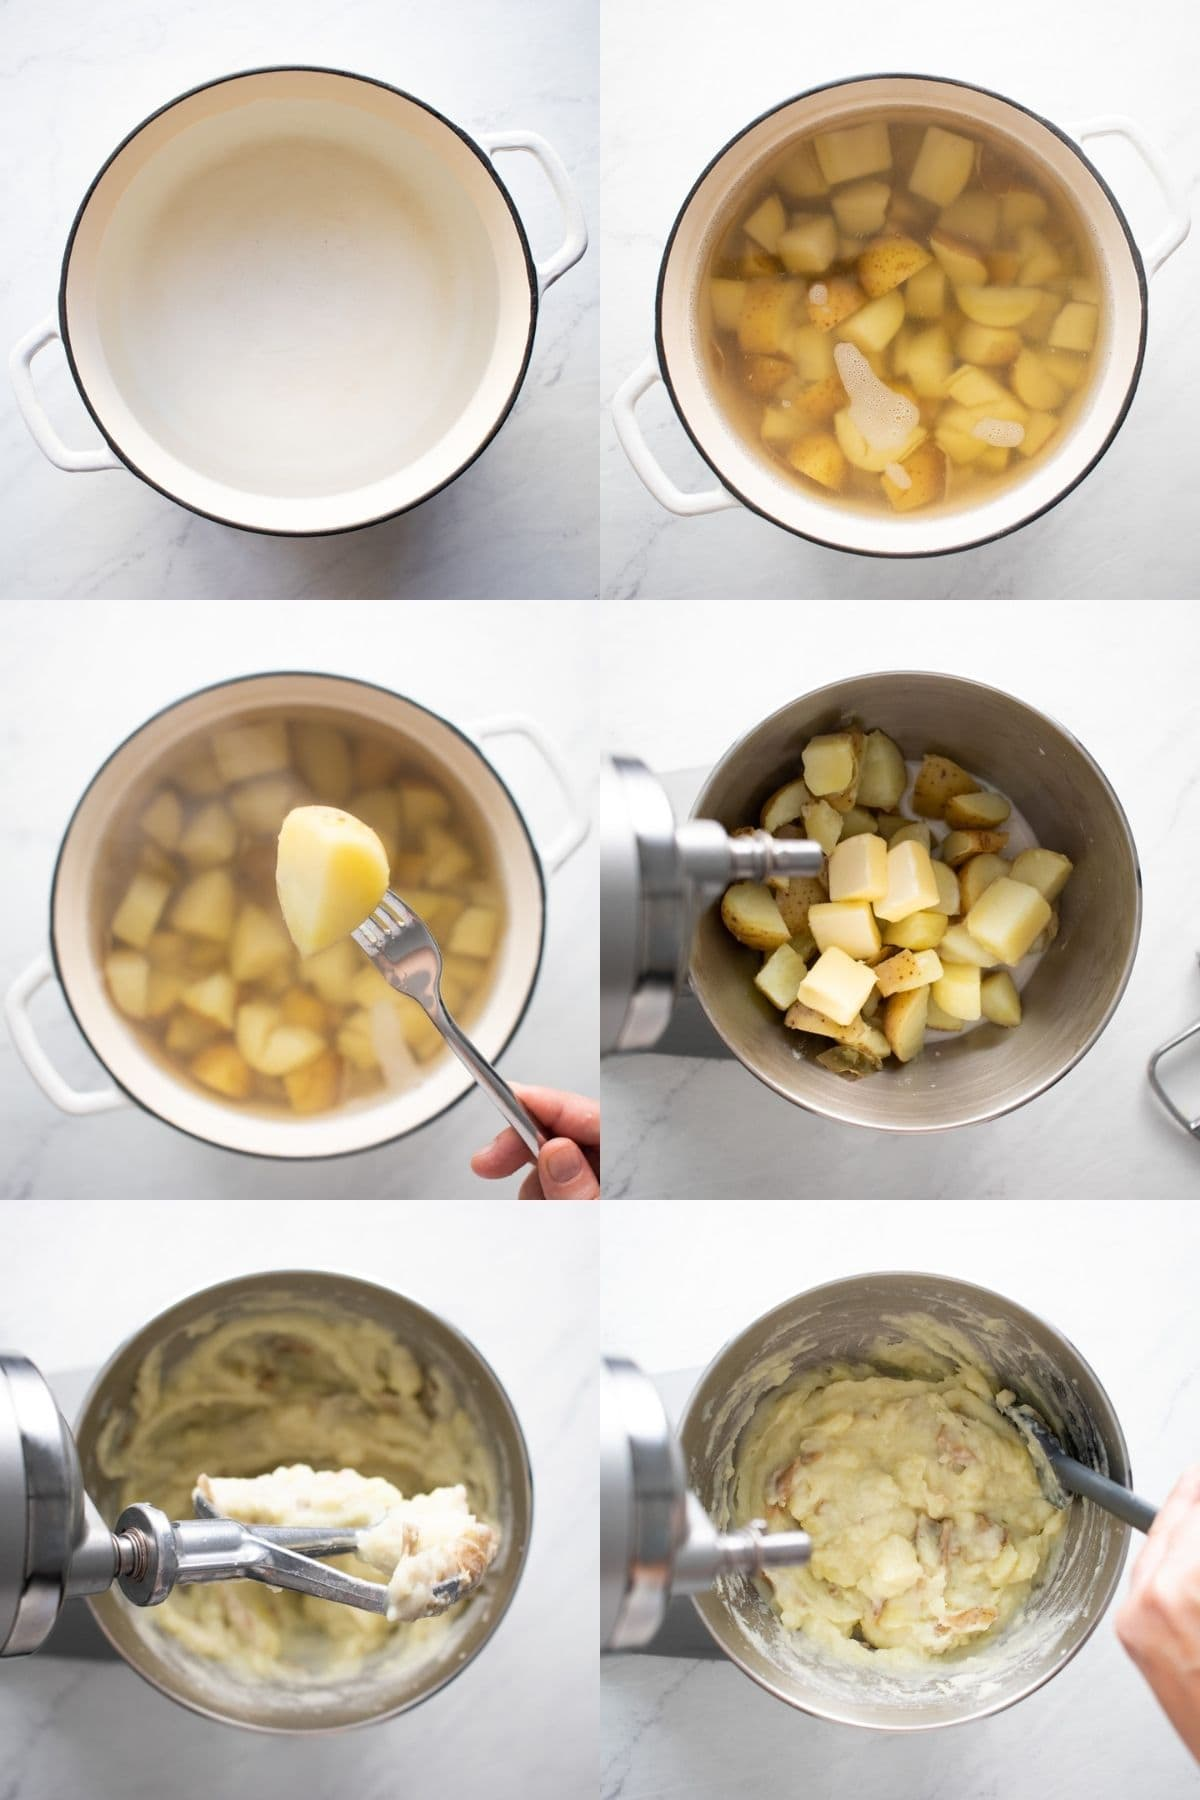 Six pictures in one showing the steps to make low FODMAP mashed potatoes. 1. Boil water. 2. Add potatoes and cook until 3. potatoes are fork tender. 4. Transfer potatoes to stand mixer and add milk and butter. 5. Whip on low to mash. 6. Scrape the sides and adjust flavor with salt.